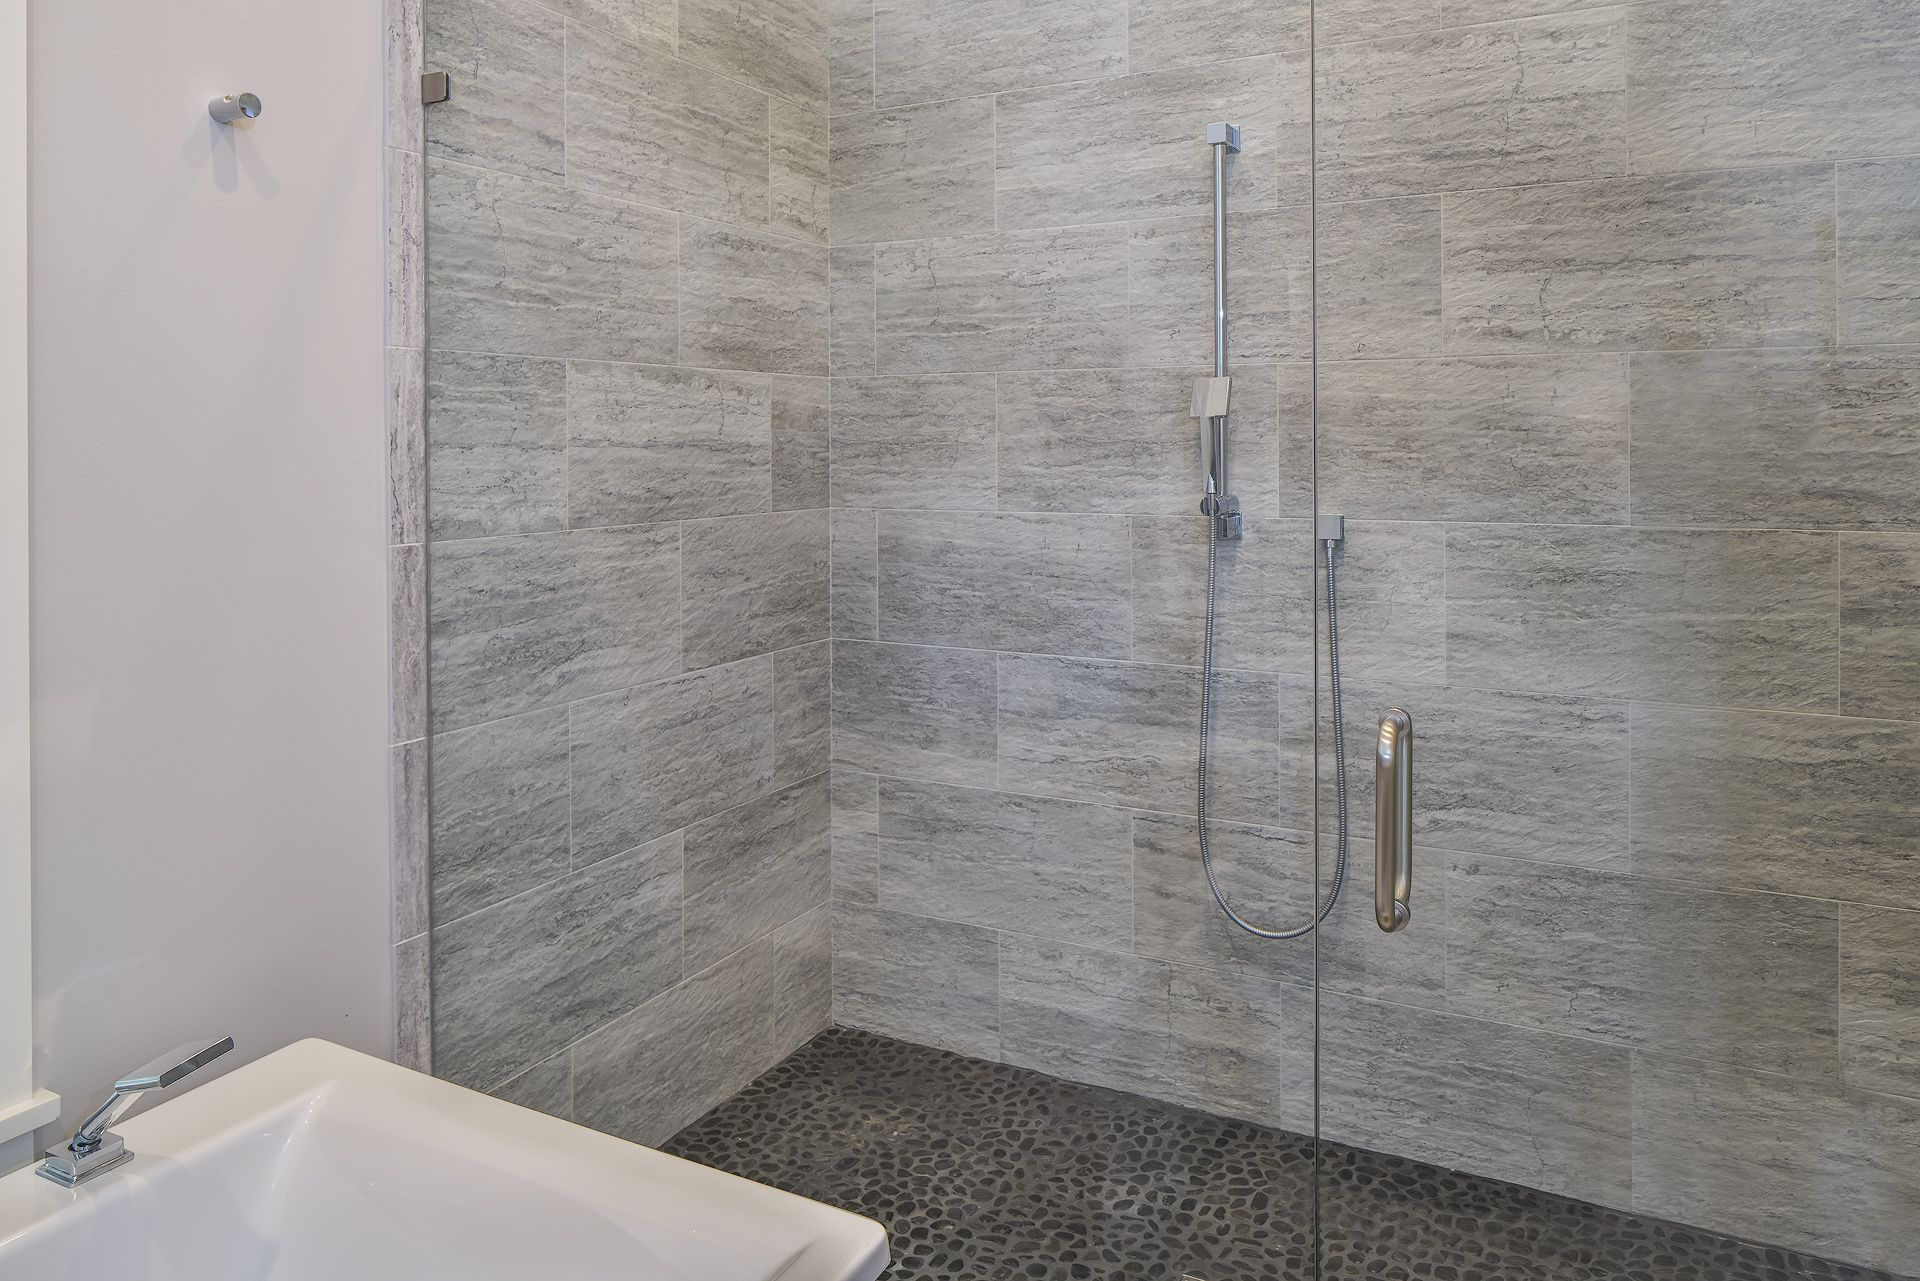 This Wow Master Bath Has A Striking 12 X 24 Porcelain Tile With Wood Grain Texture Floor And A Pebble Ston Porcelain Countertops Flooring Bathroom Renovation